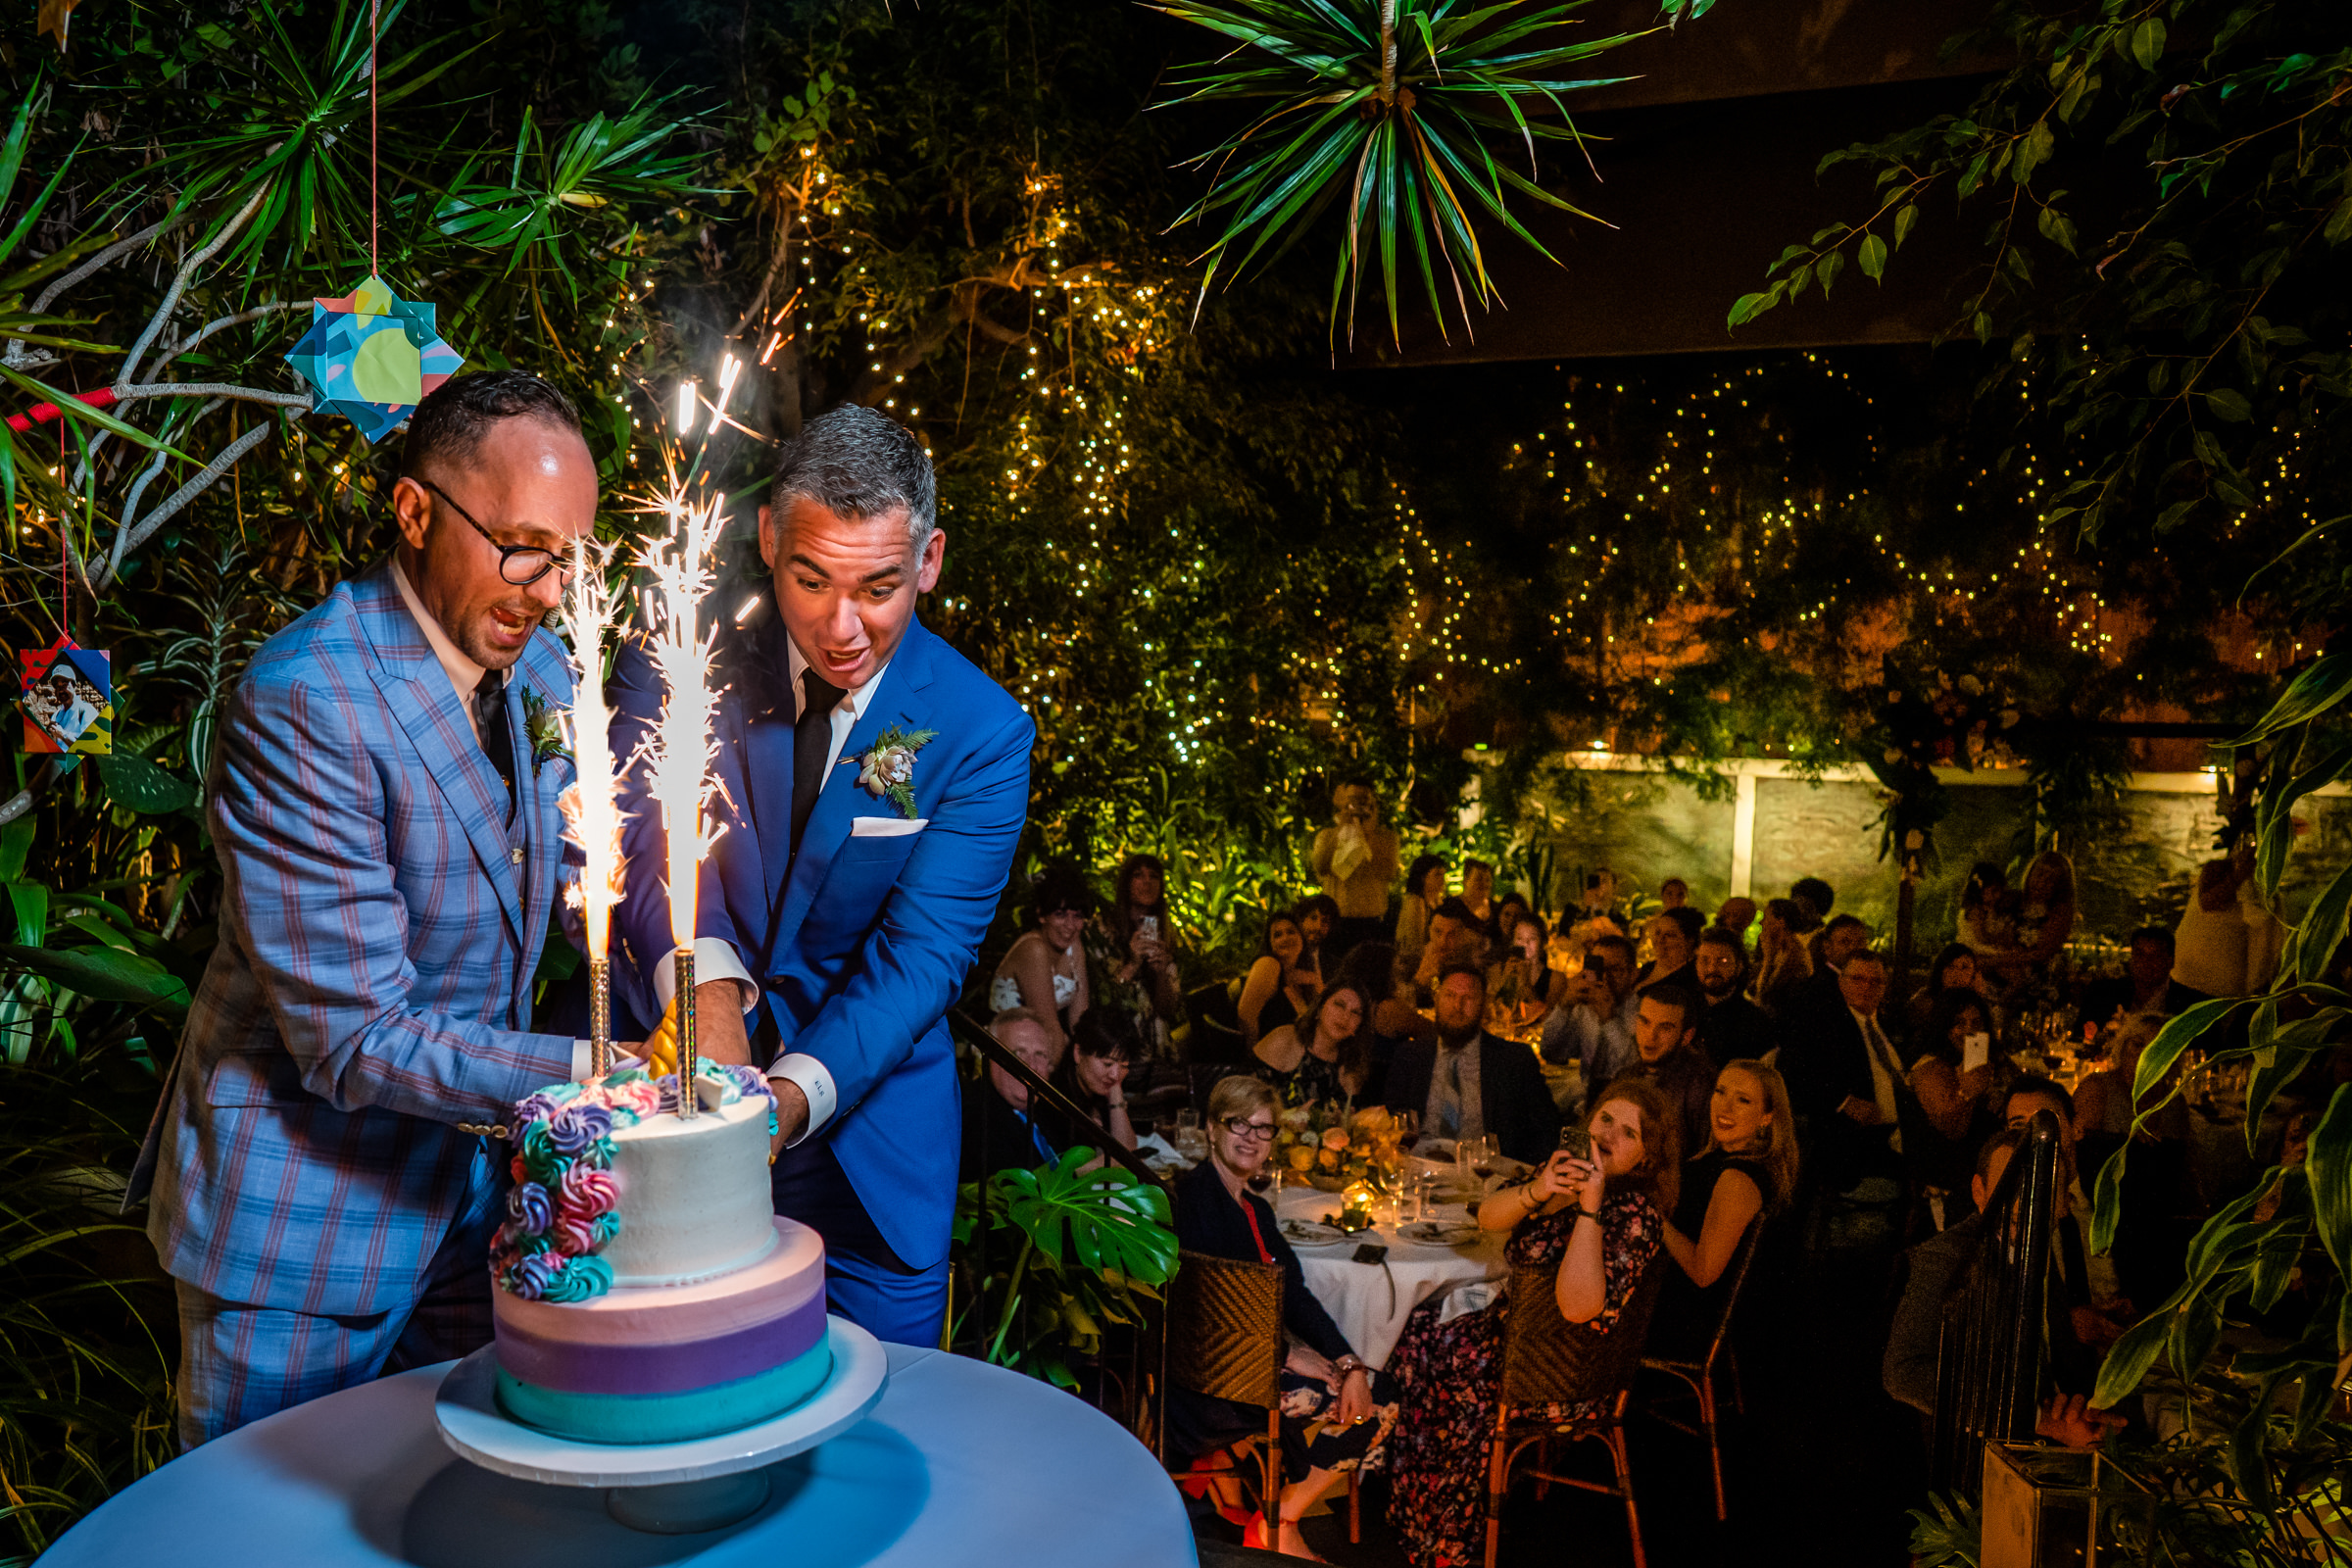 Grooms try to cut cake with sparklers - photo by Bee Two Sweet